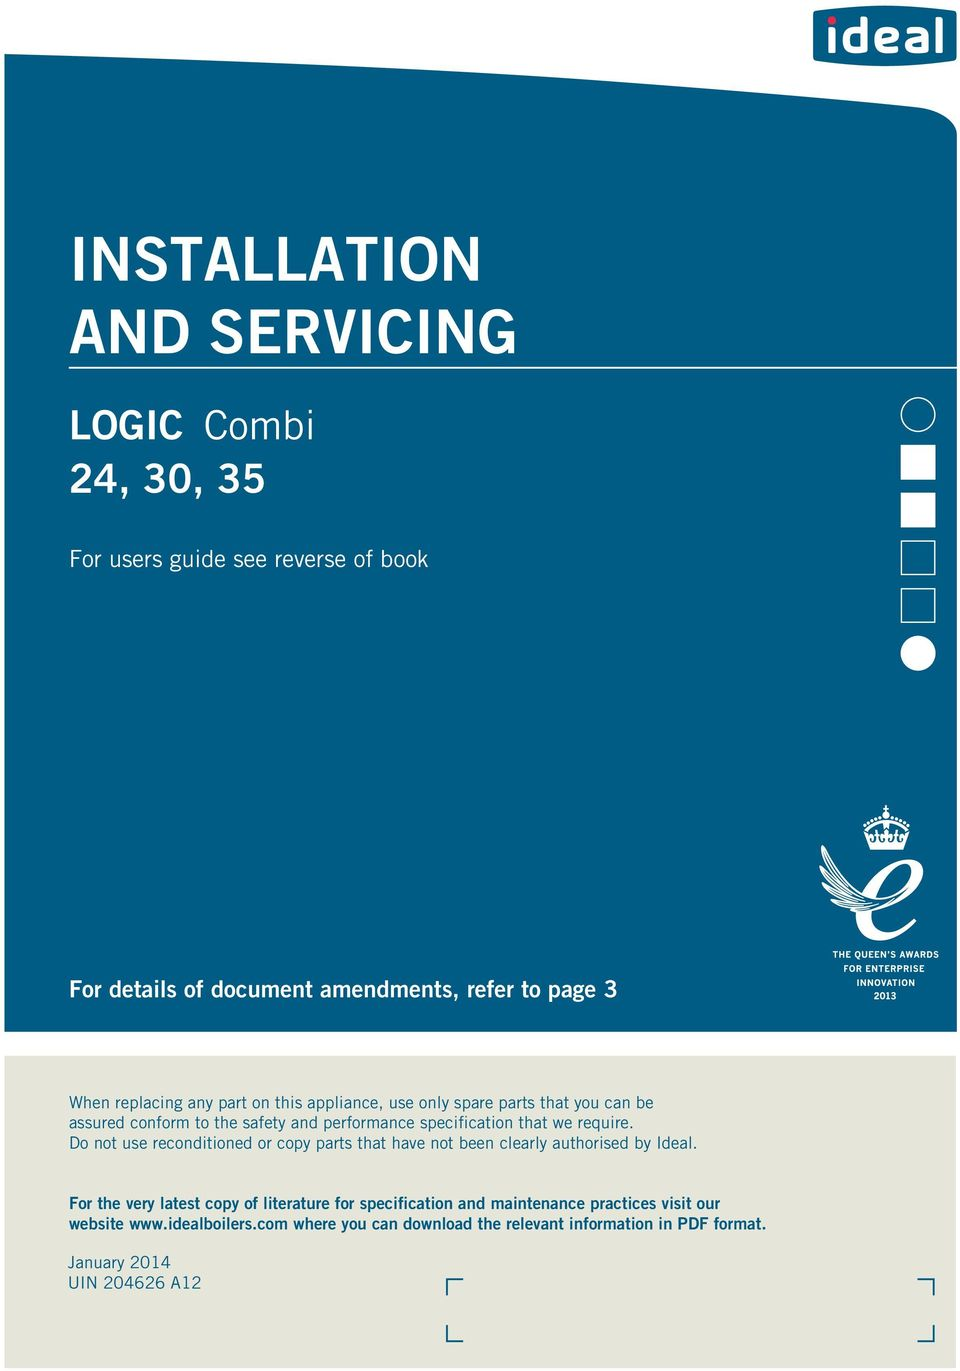 INSTALLATION AND SERVICING - PDF